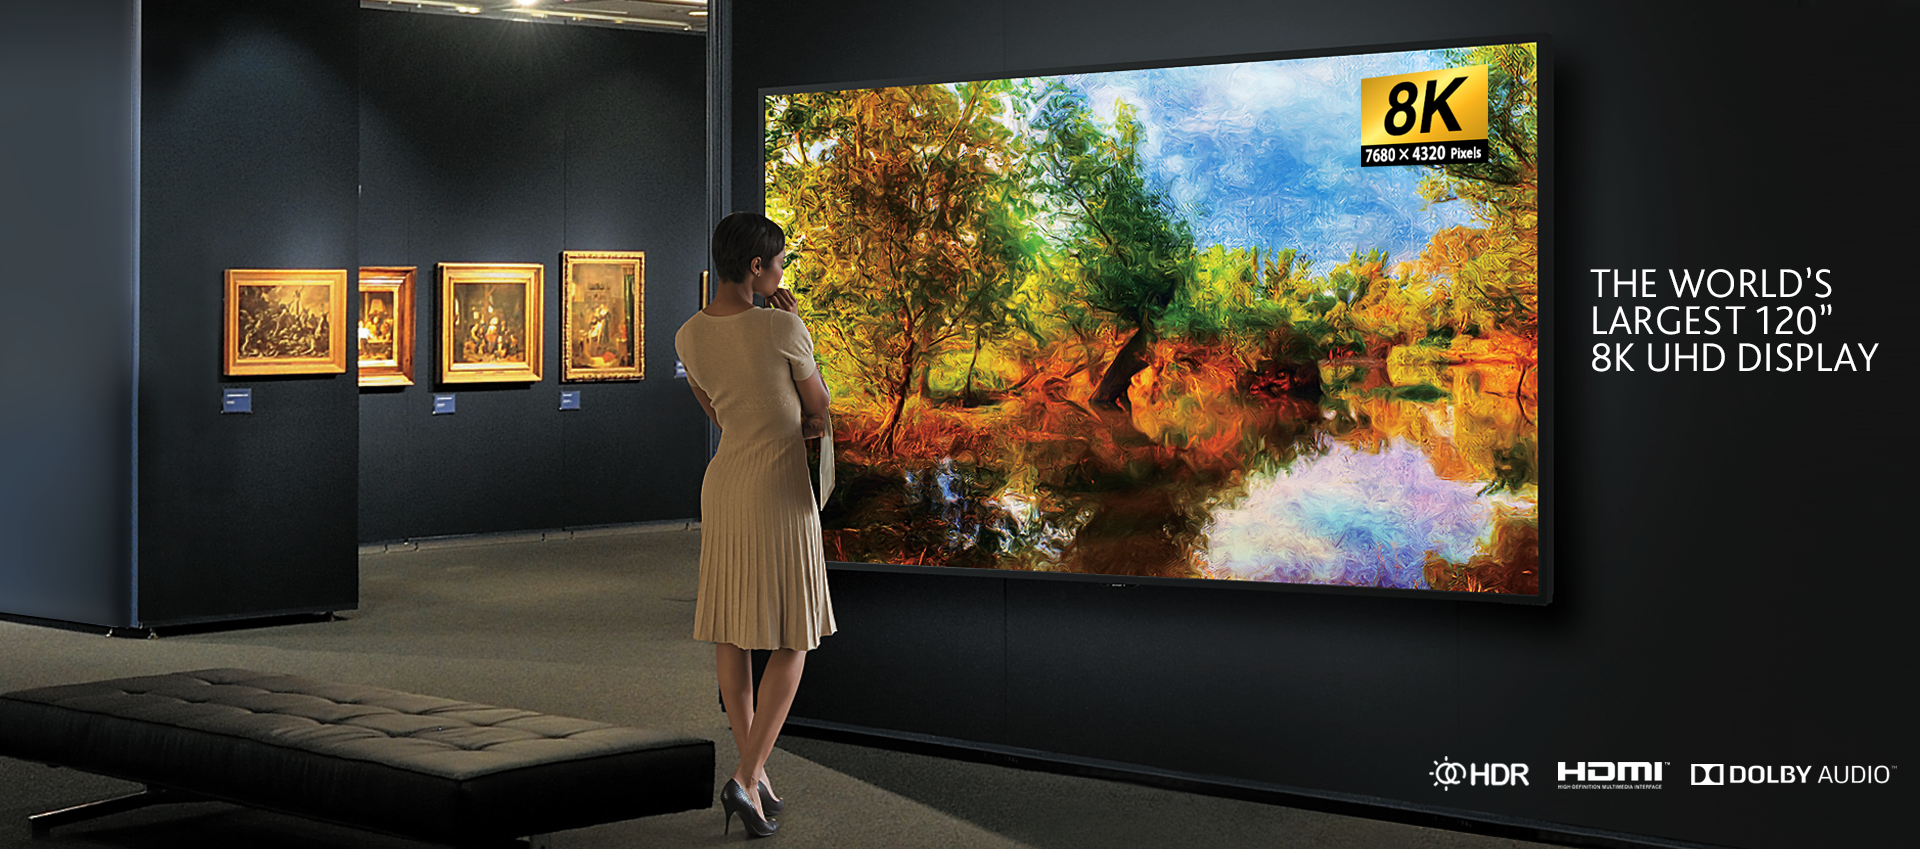 largest 8k screen tv display 120 inches